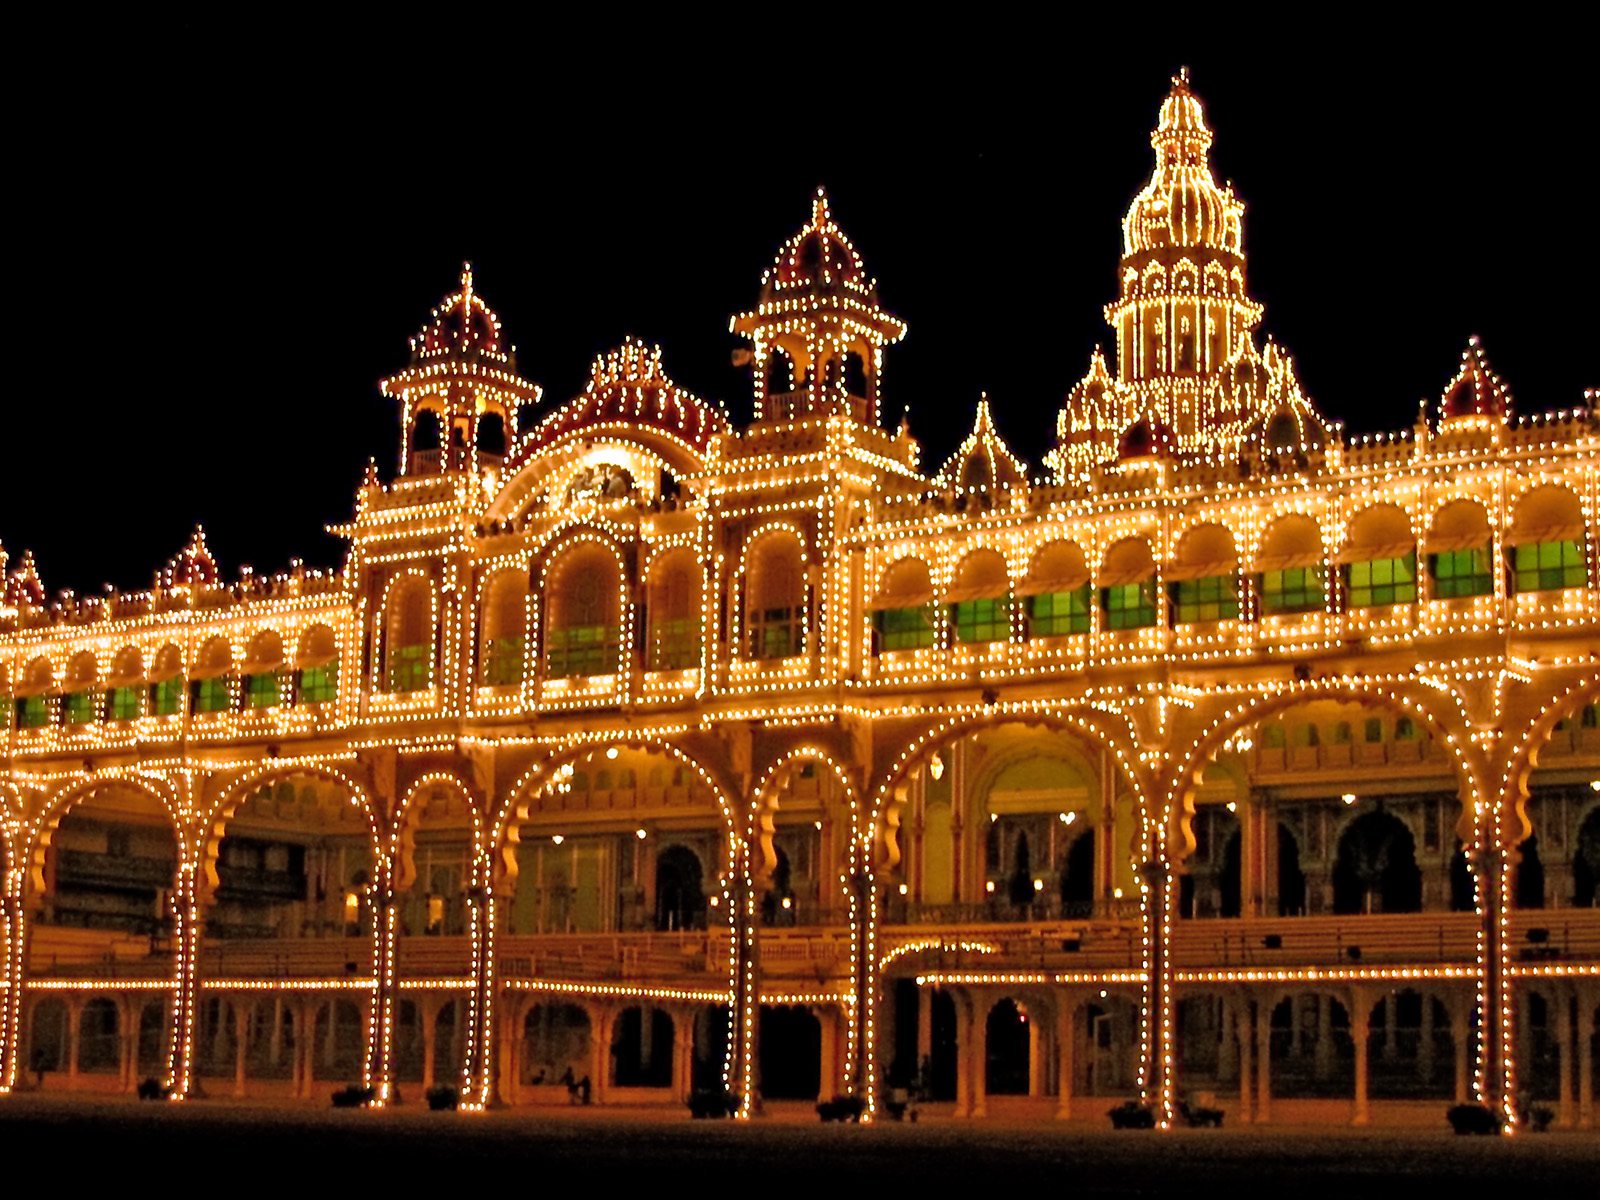 Maharaja's Palace at night